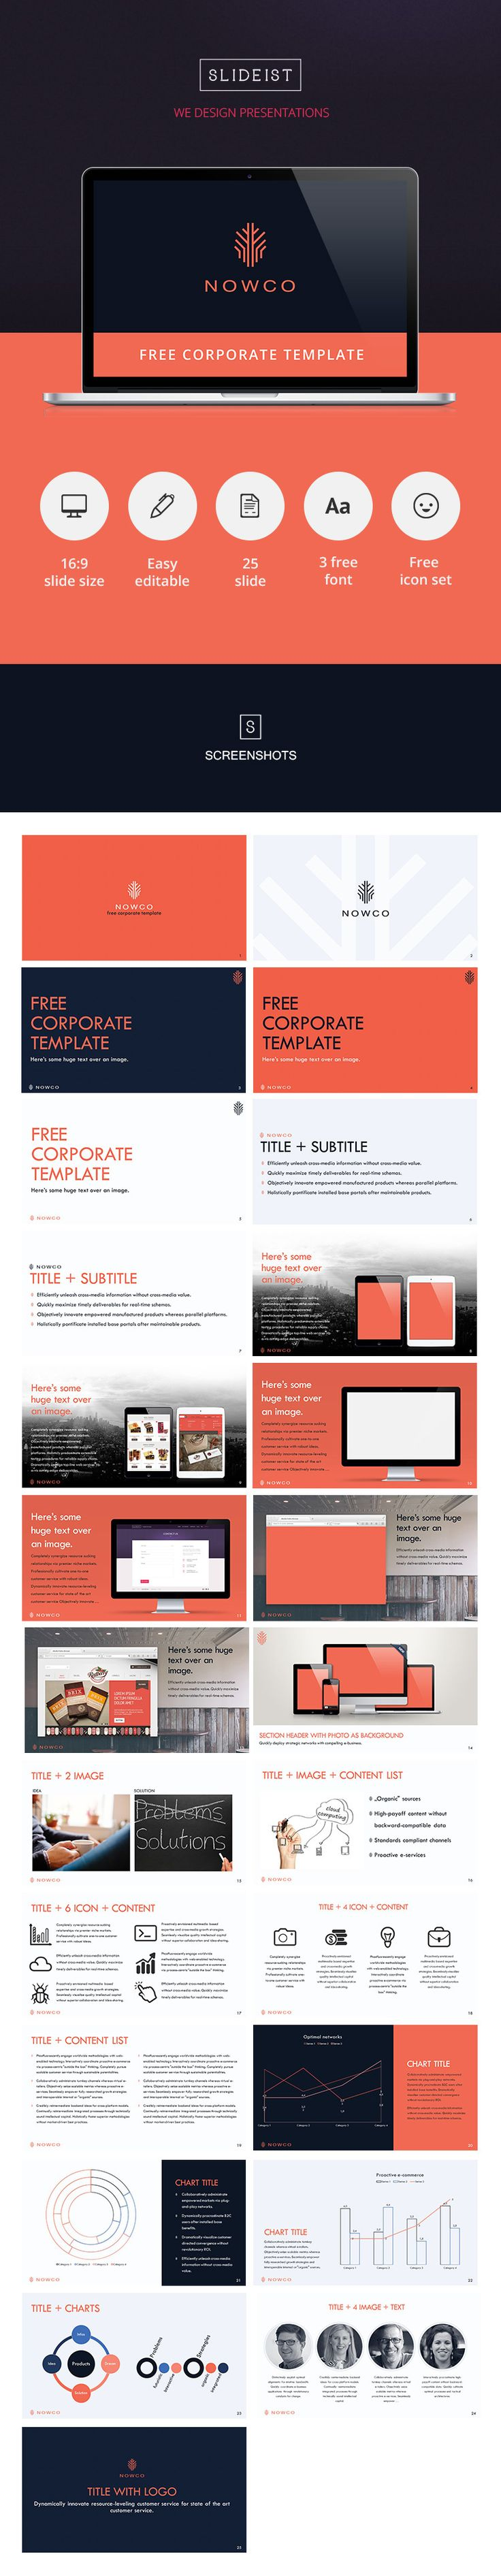 some interesting topics for presentation organizing a visual  ideas about powerpoint presentations nowco powerpoint presentation template